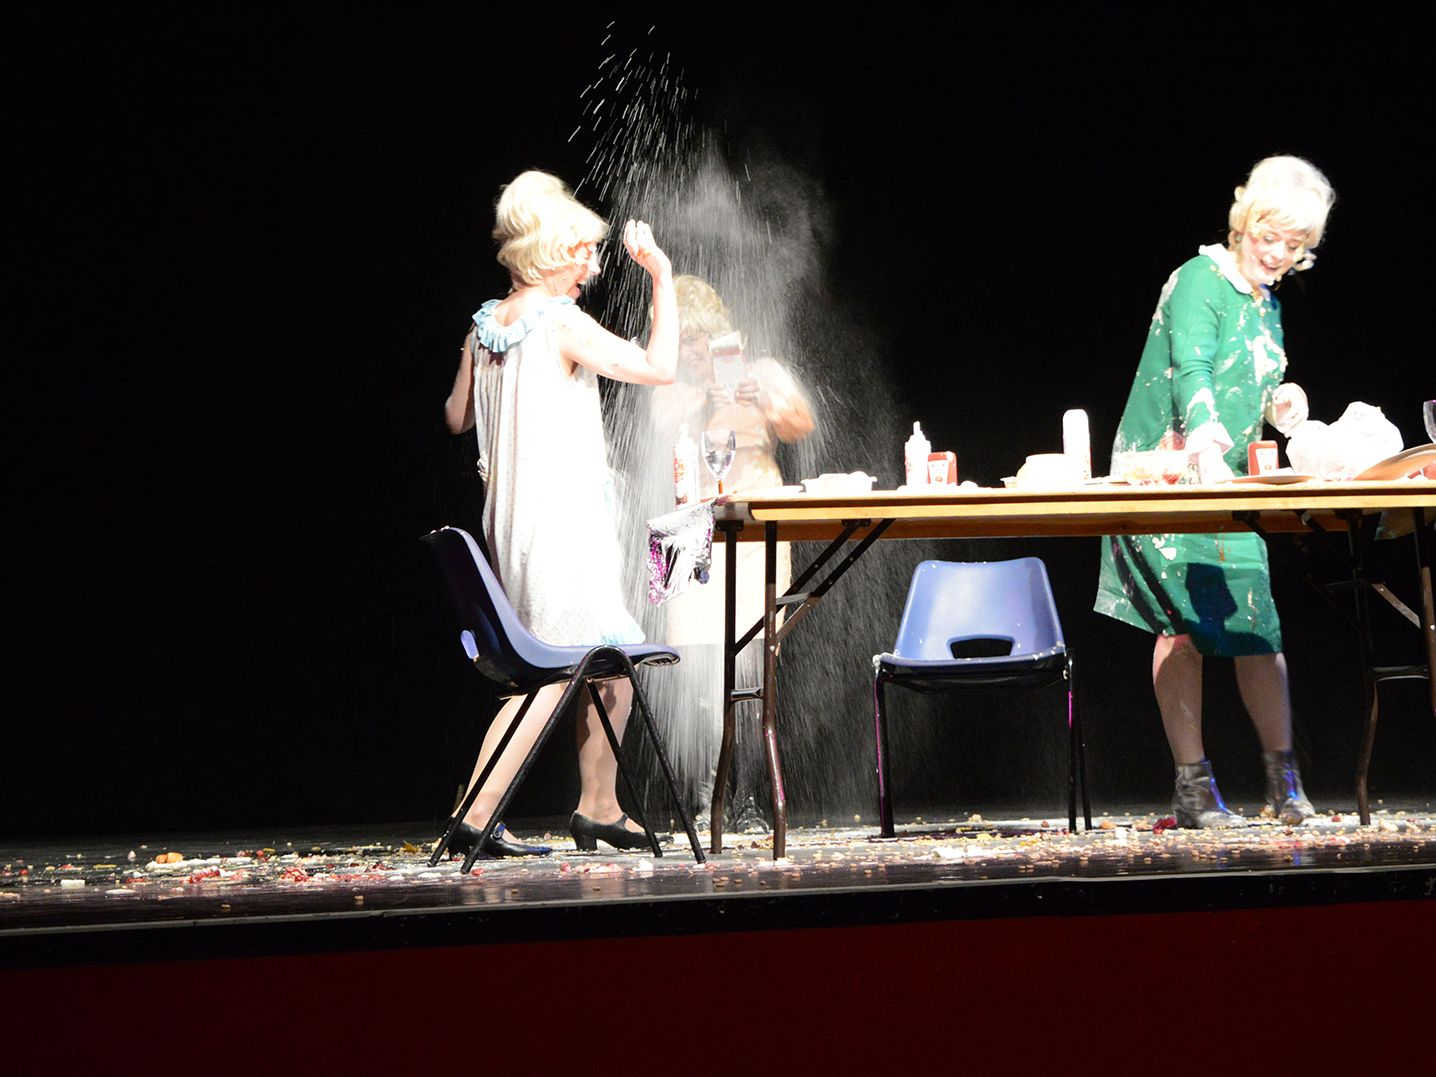 3 women dressed as Dusty Springfield having a food fight performance.